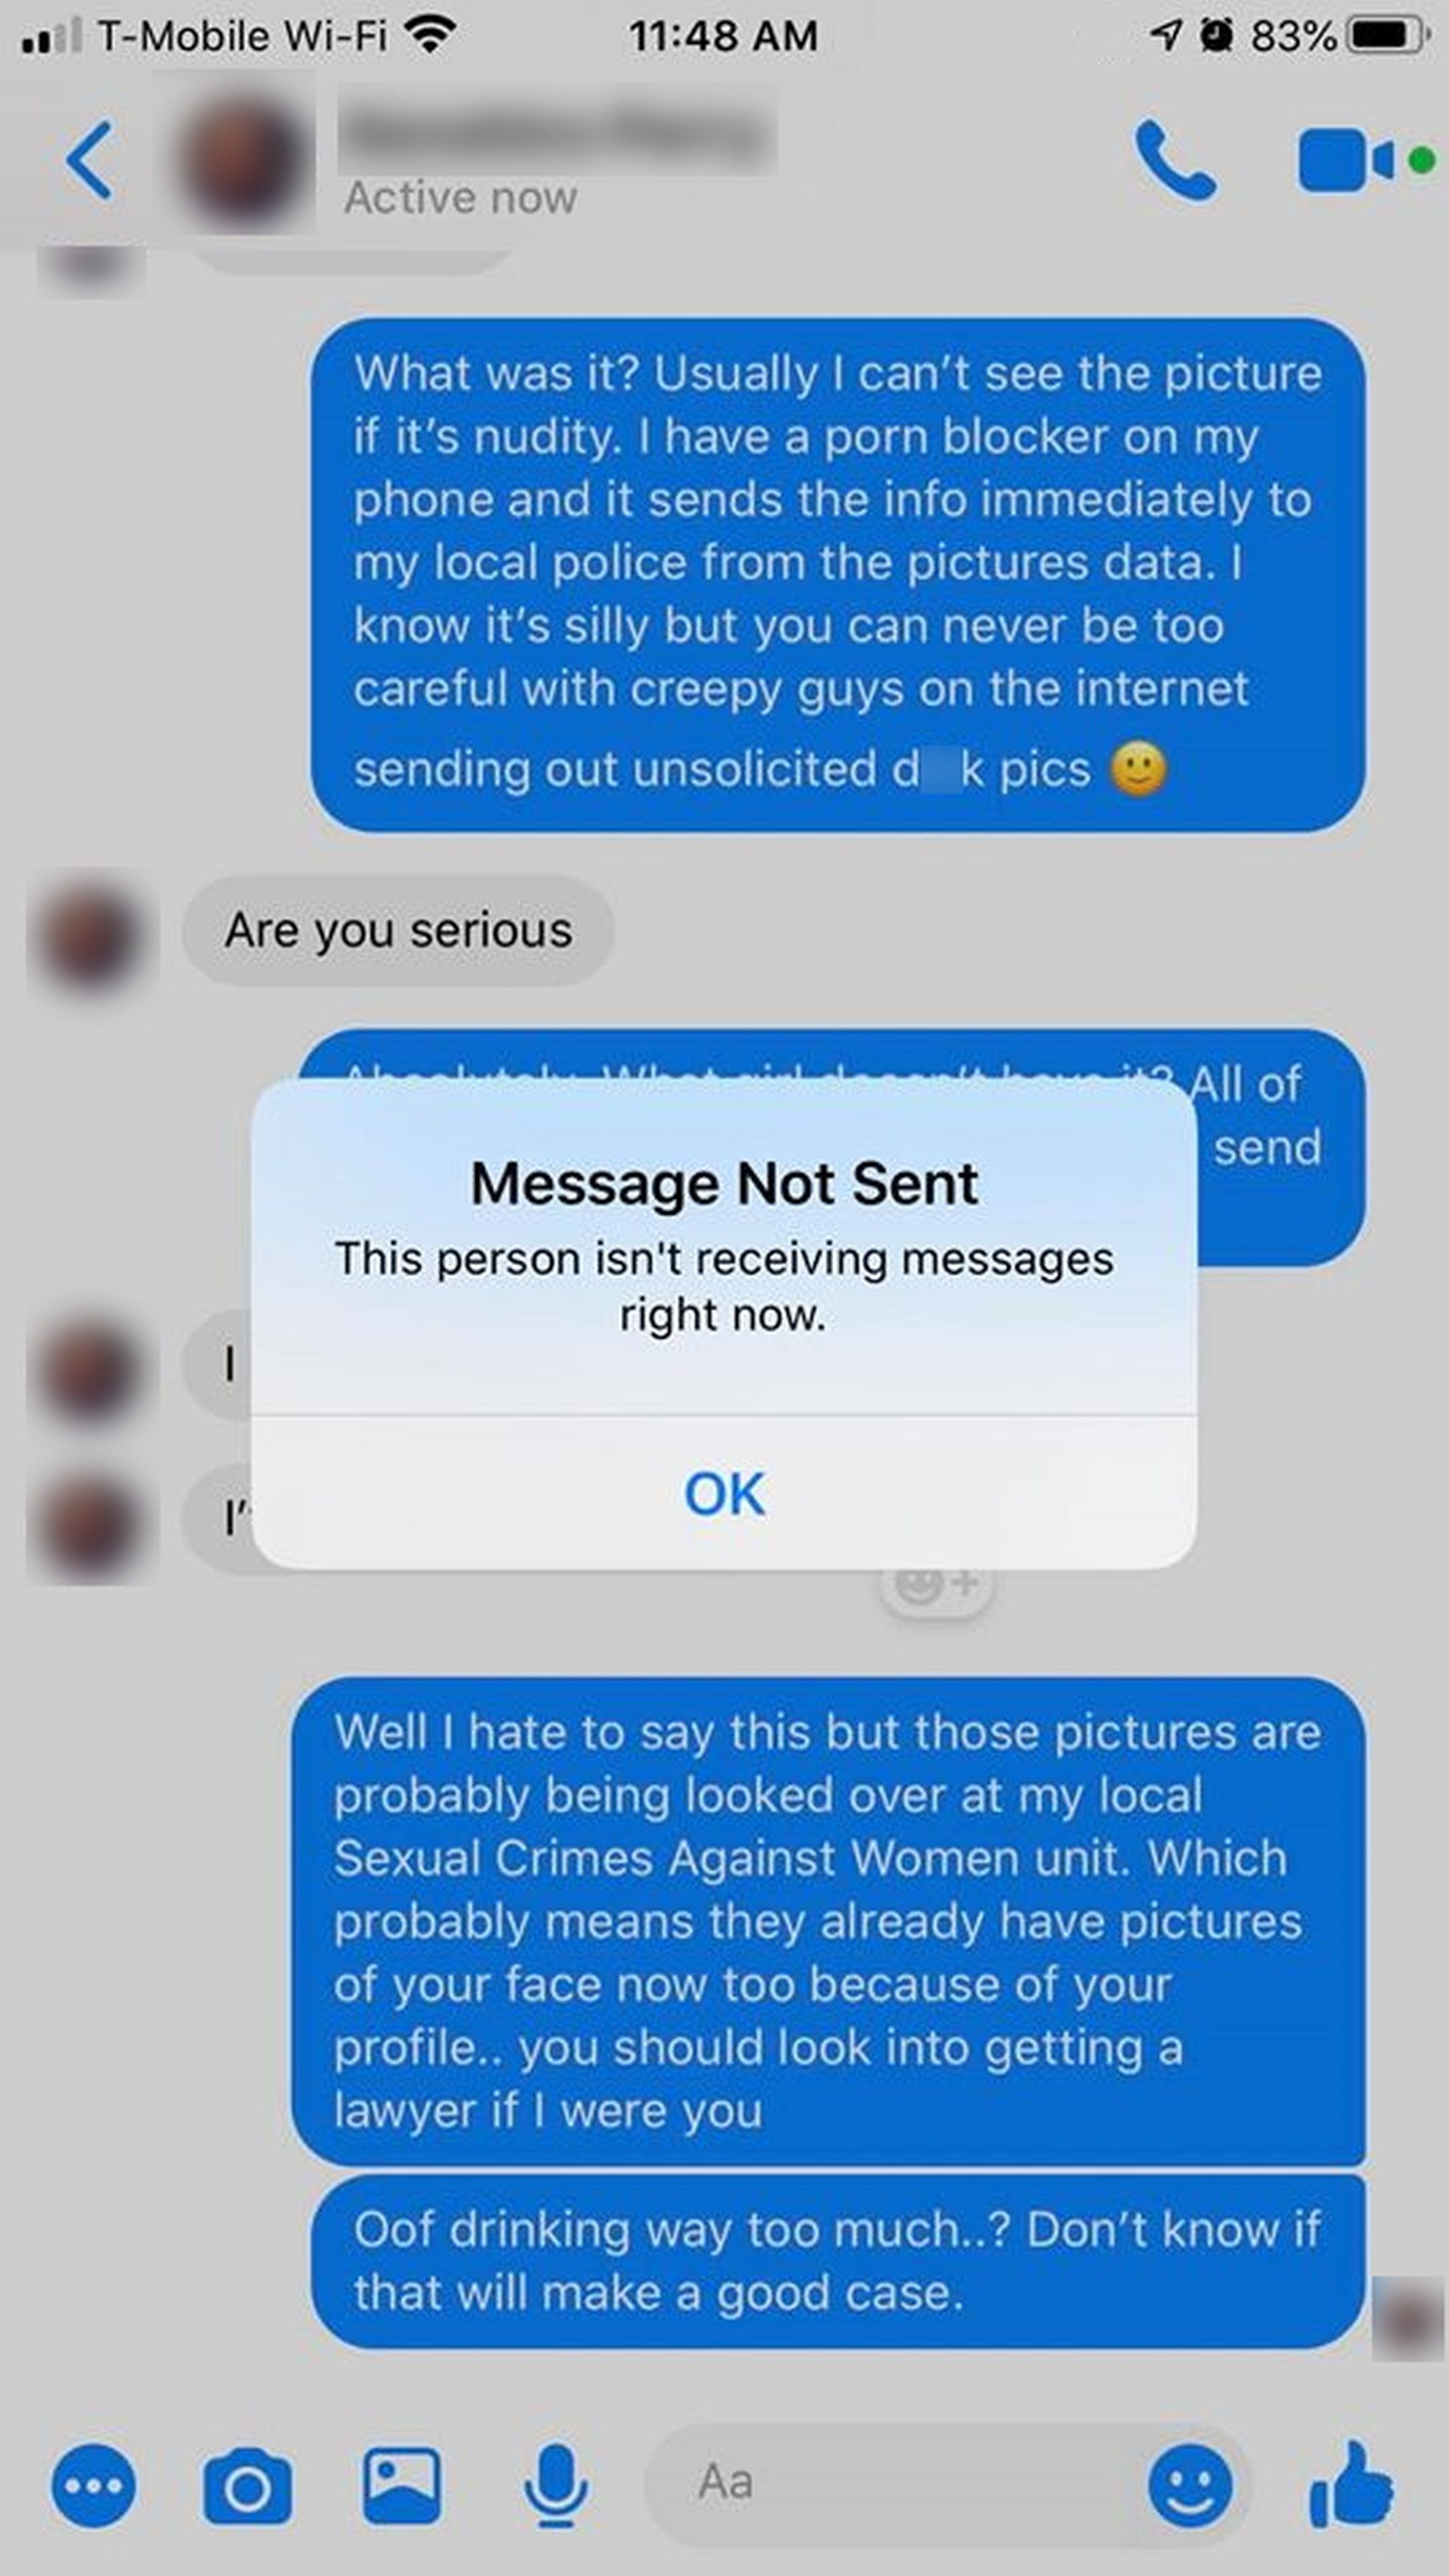 Woman Pranks Guy Who Sent Unsolicited Dick Pics With Automatic Forwarding To Cops